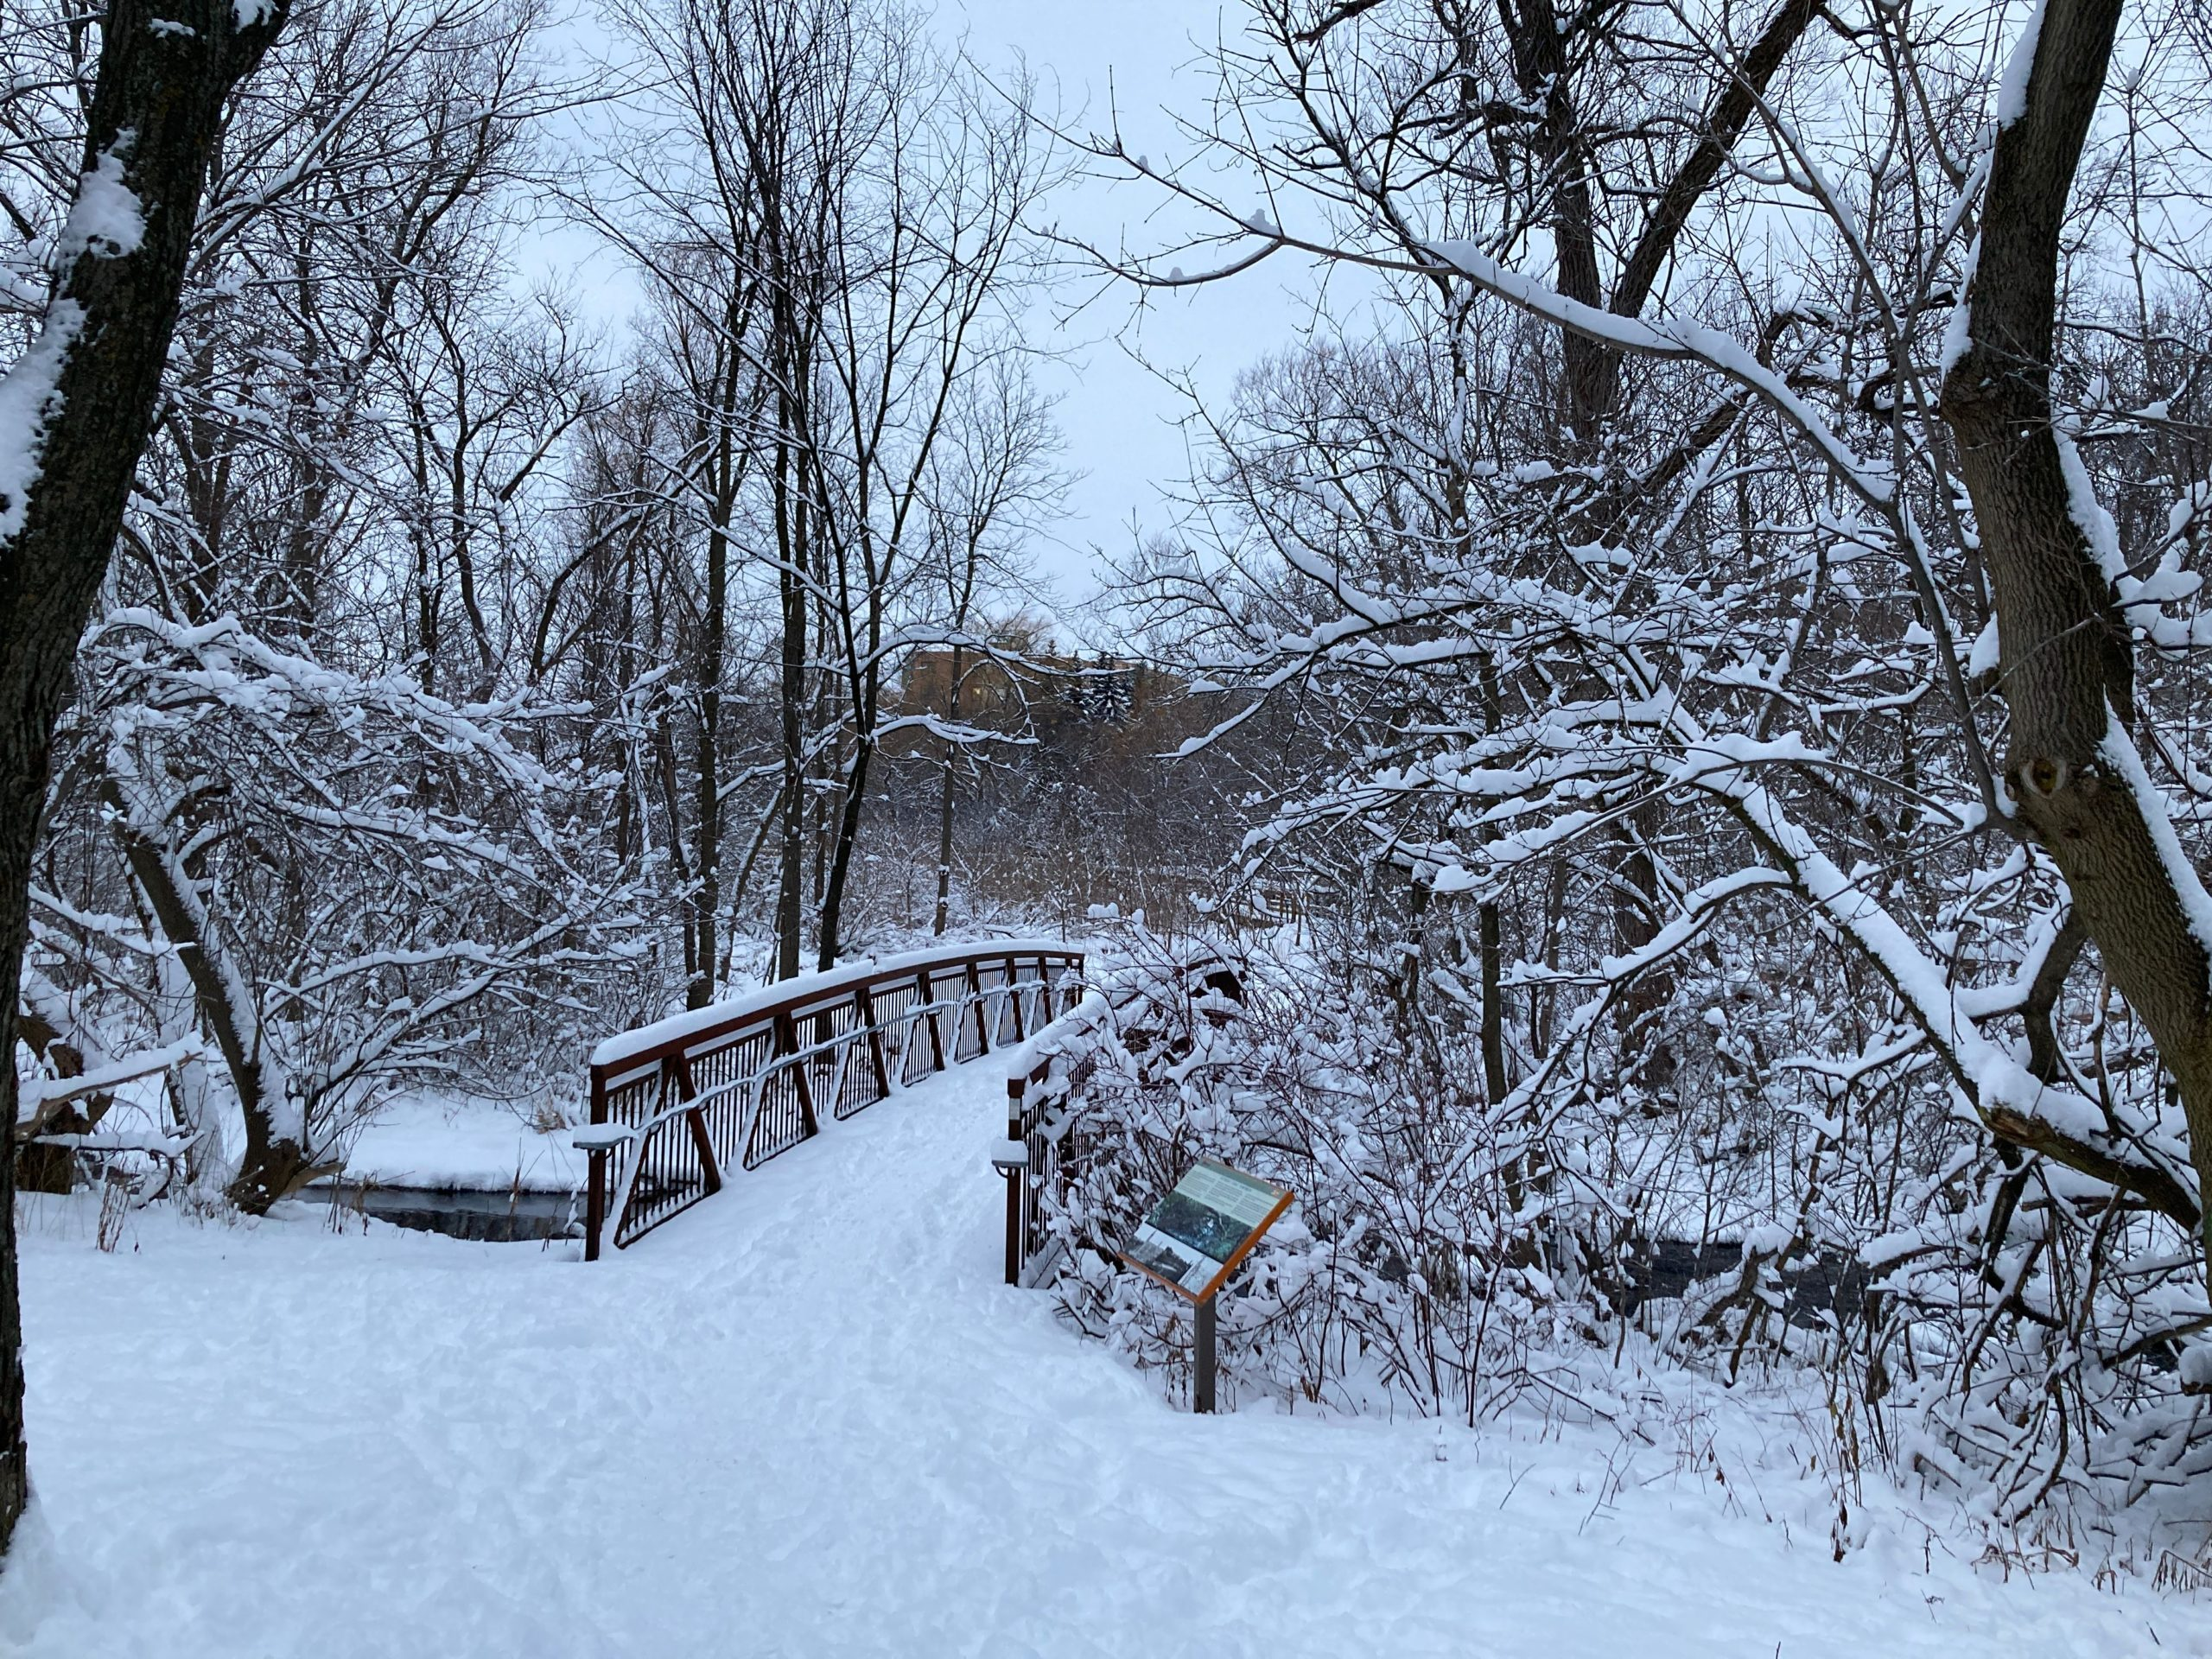 snow, bridge, winter, scene